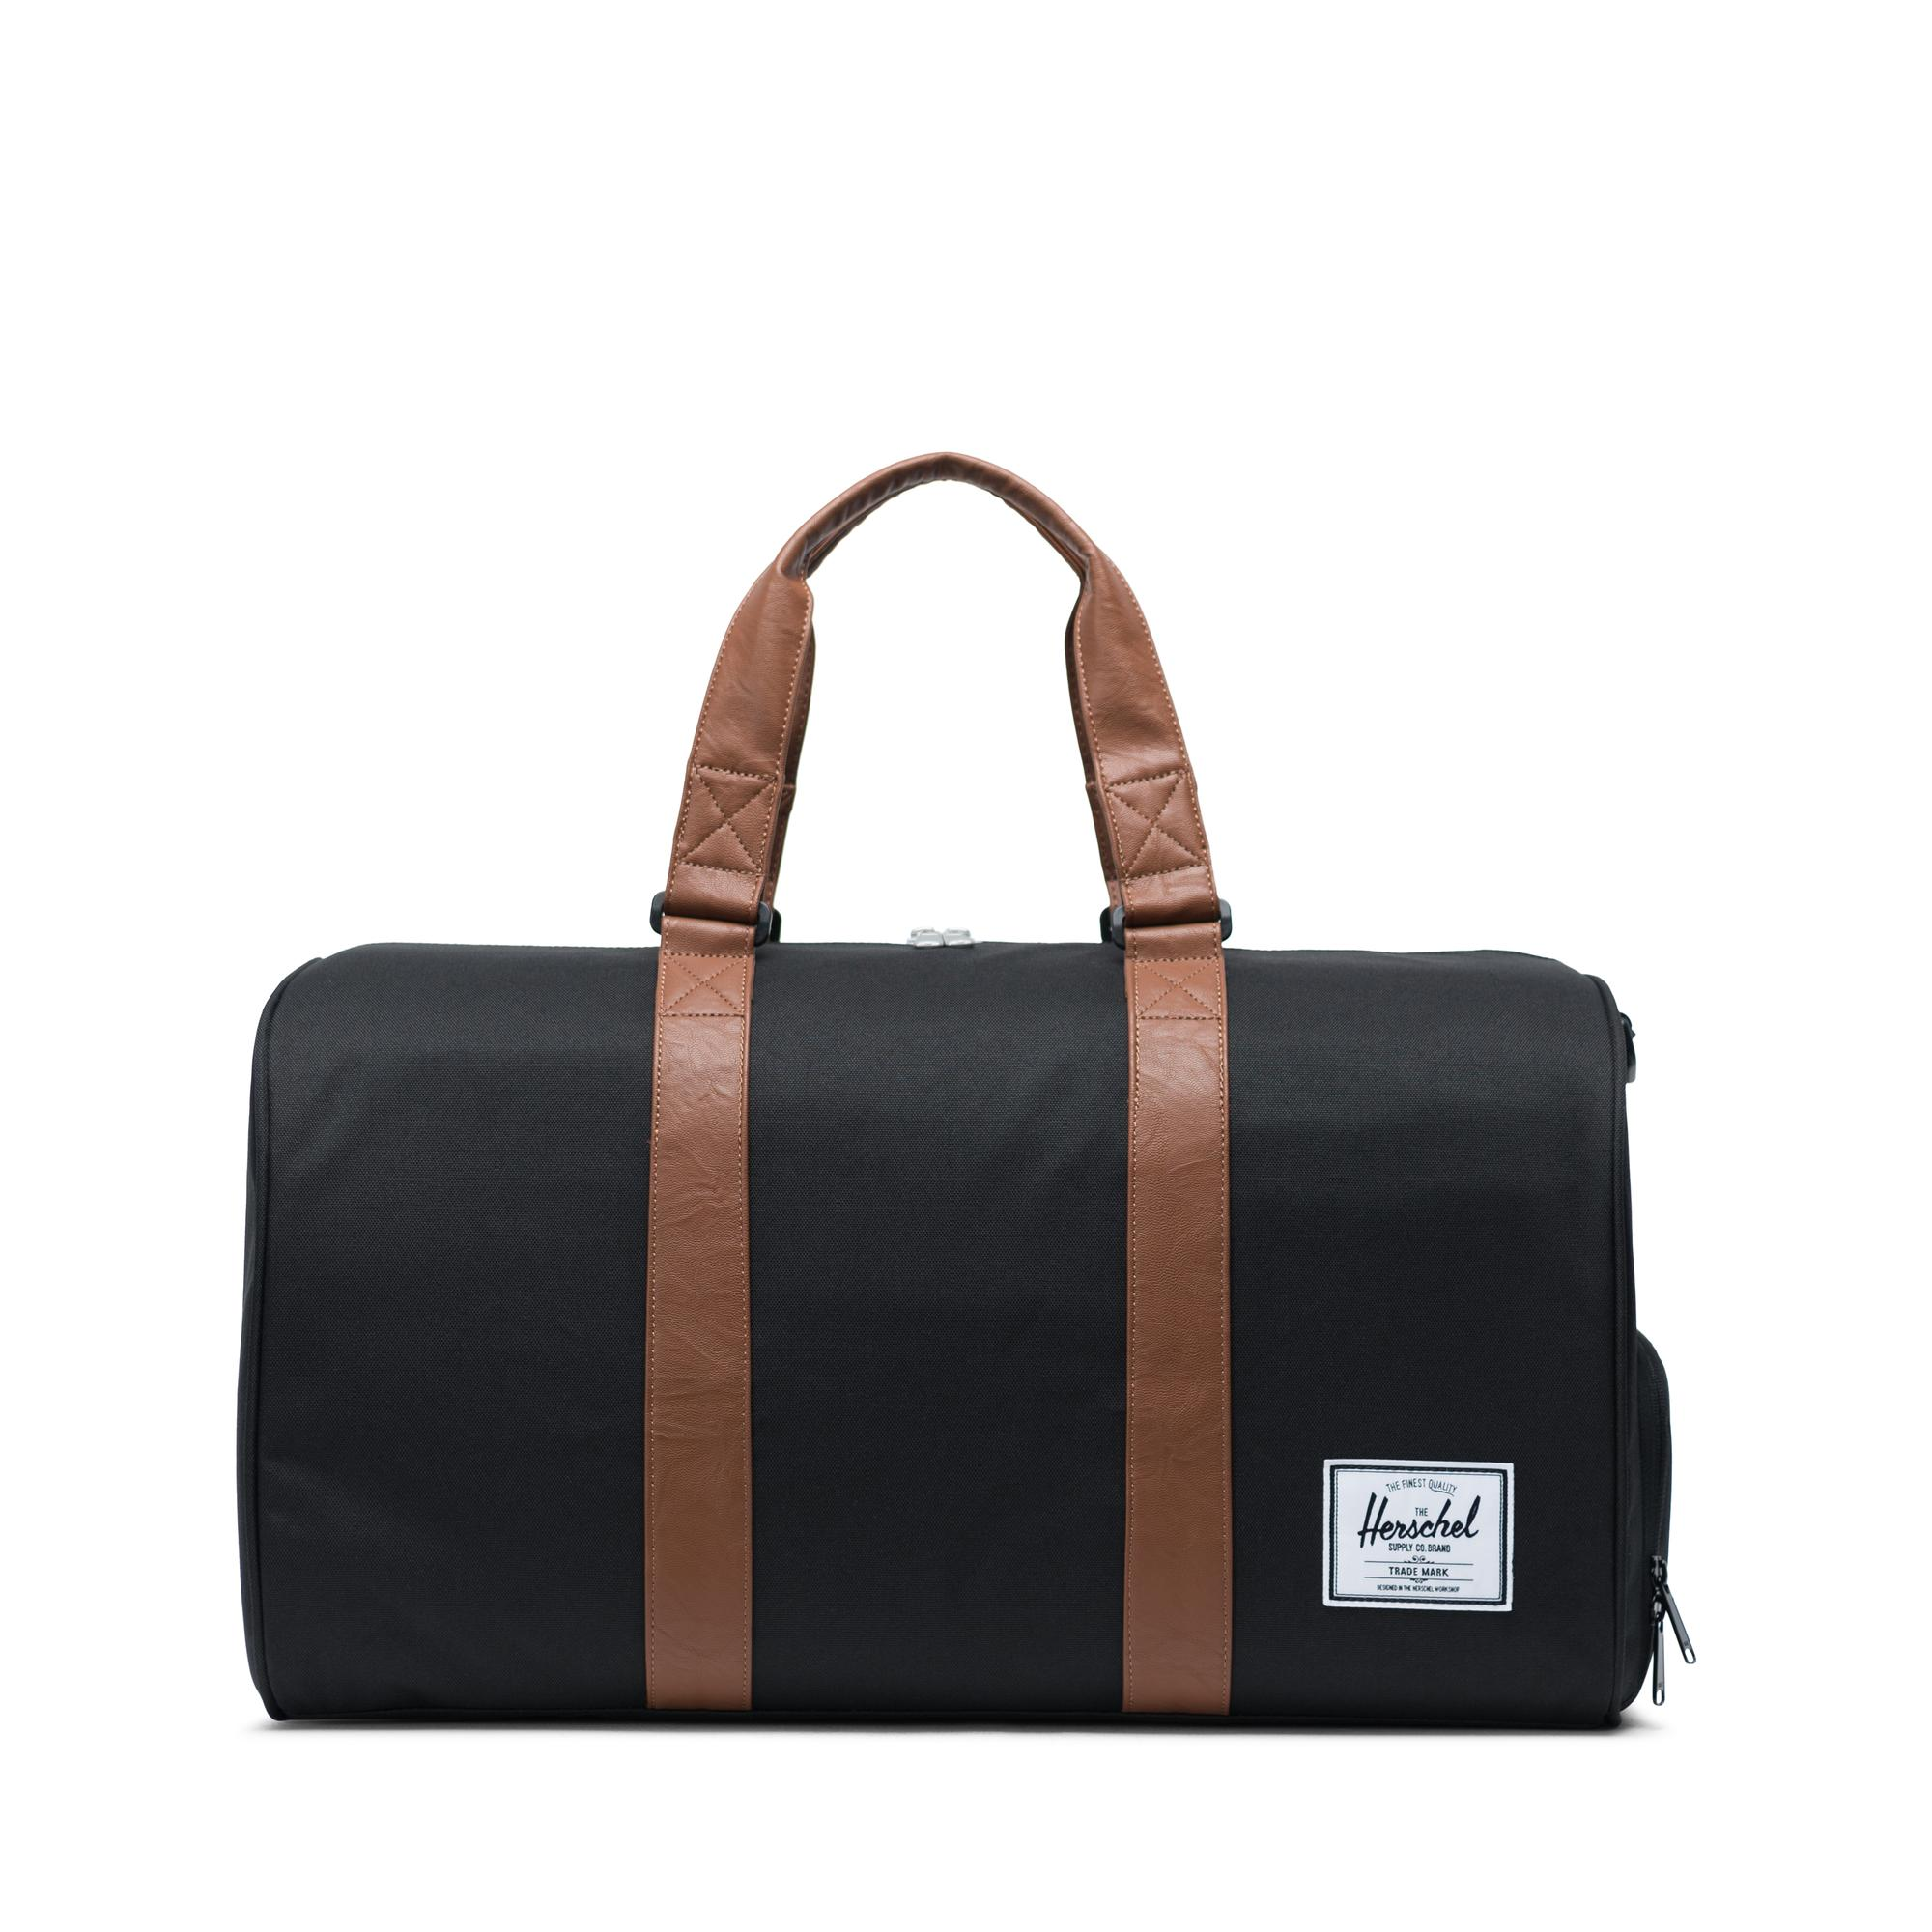 d5fe94b6cb3 Novel Duffle